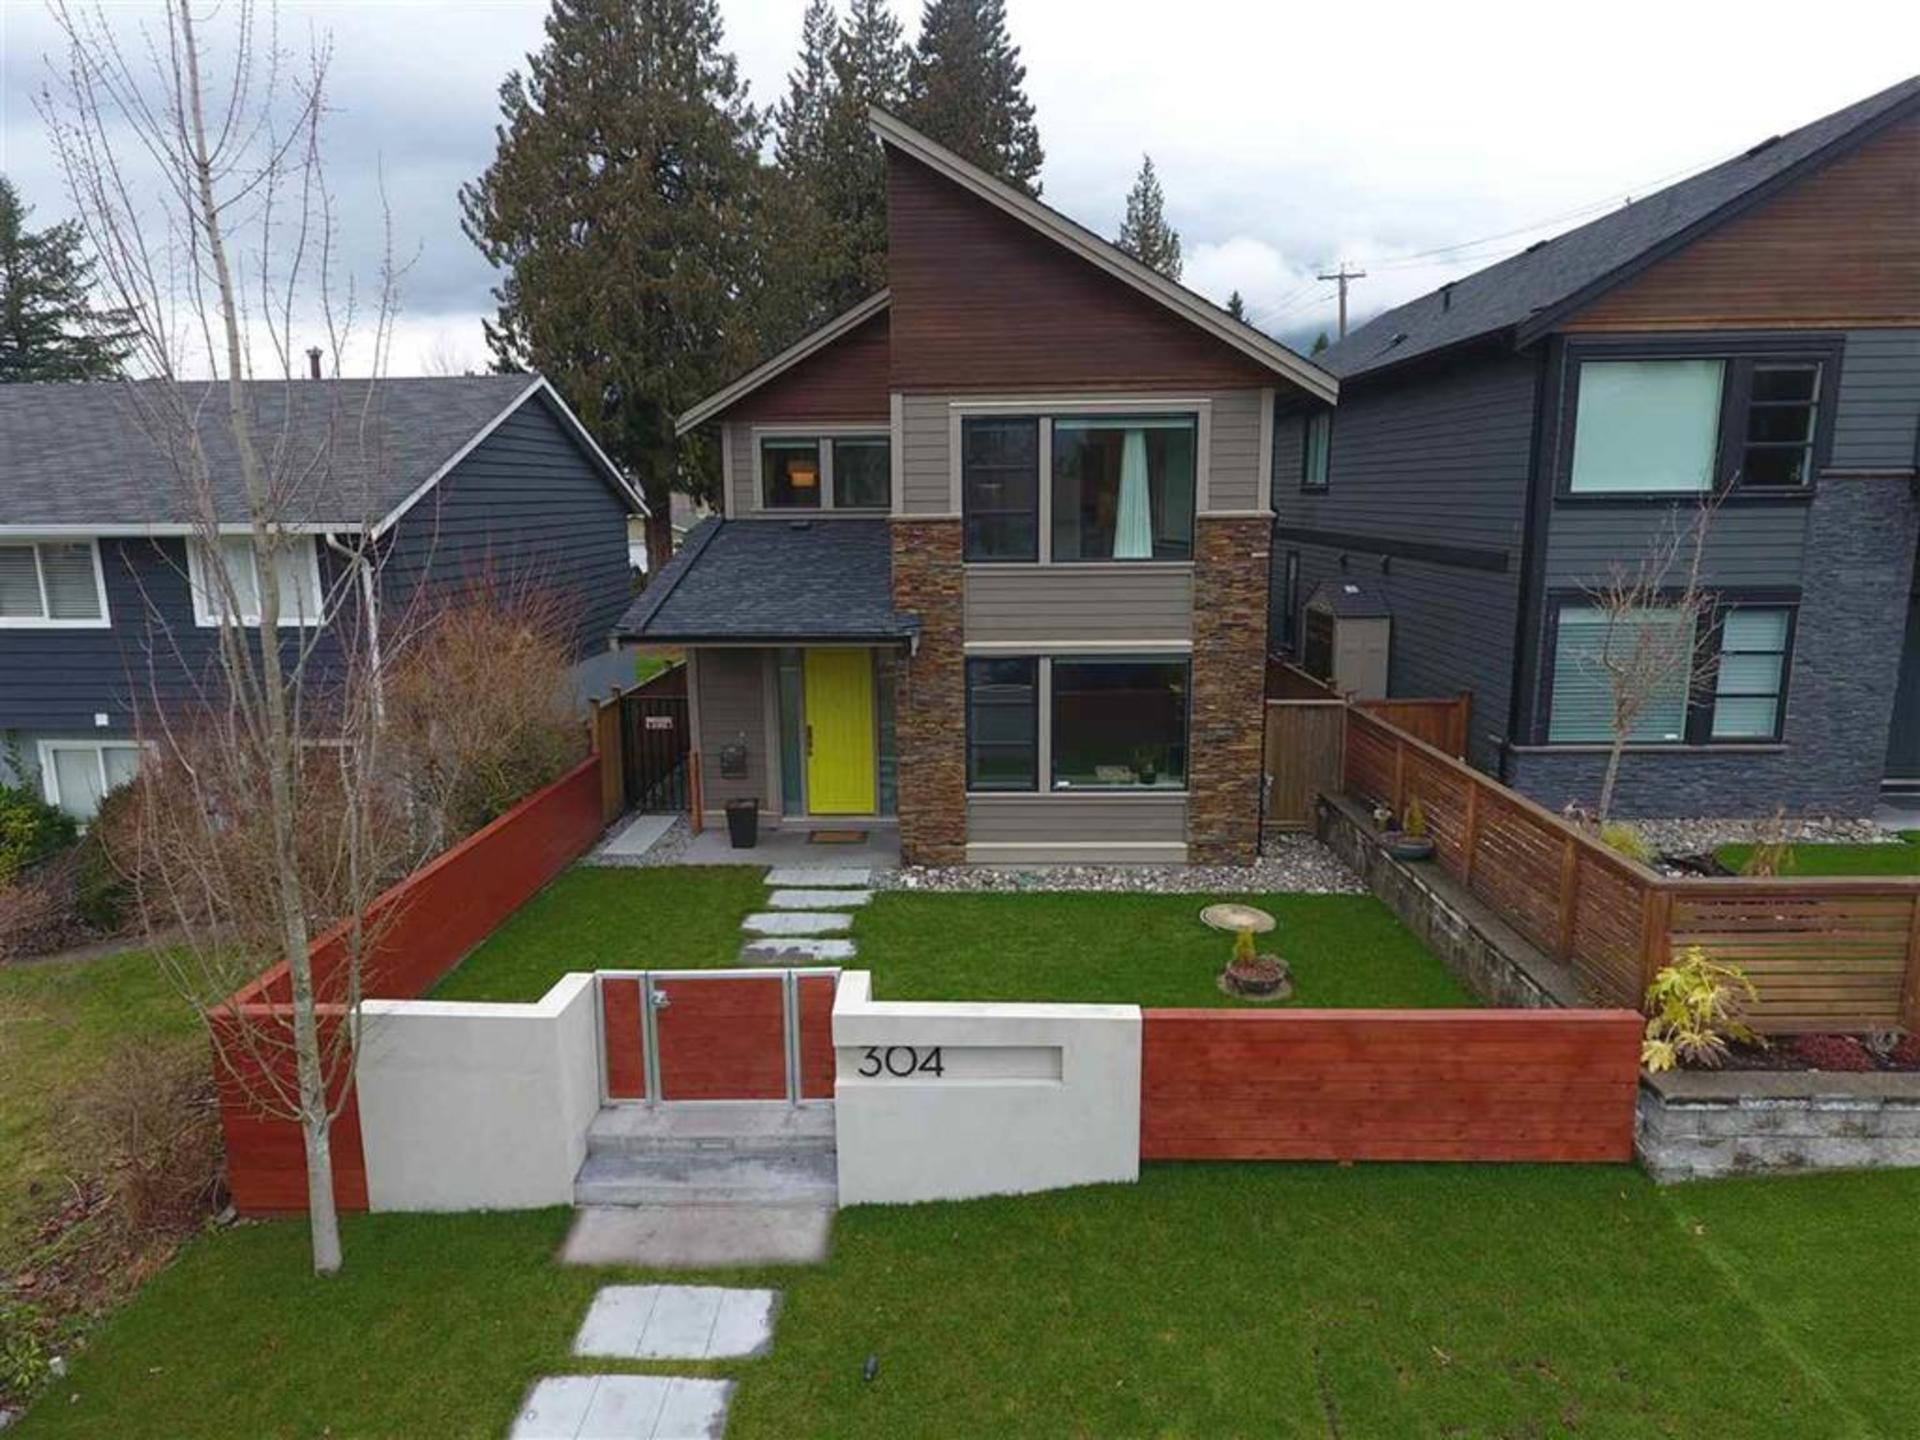 304 W 21st Street, Central Lonsdale, North Vancouver